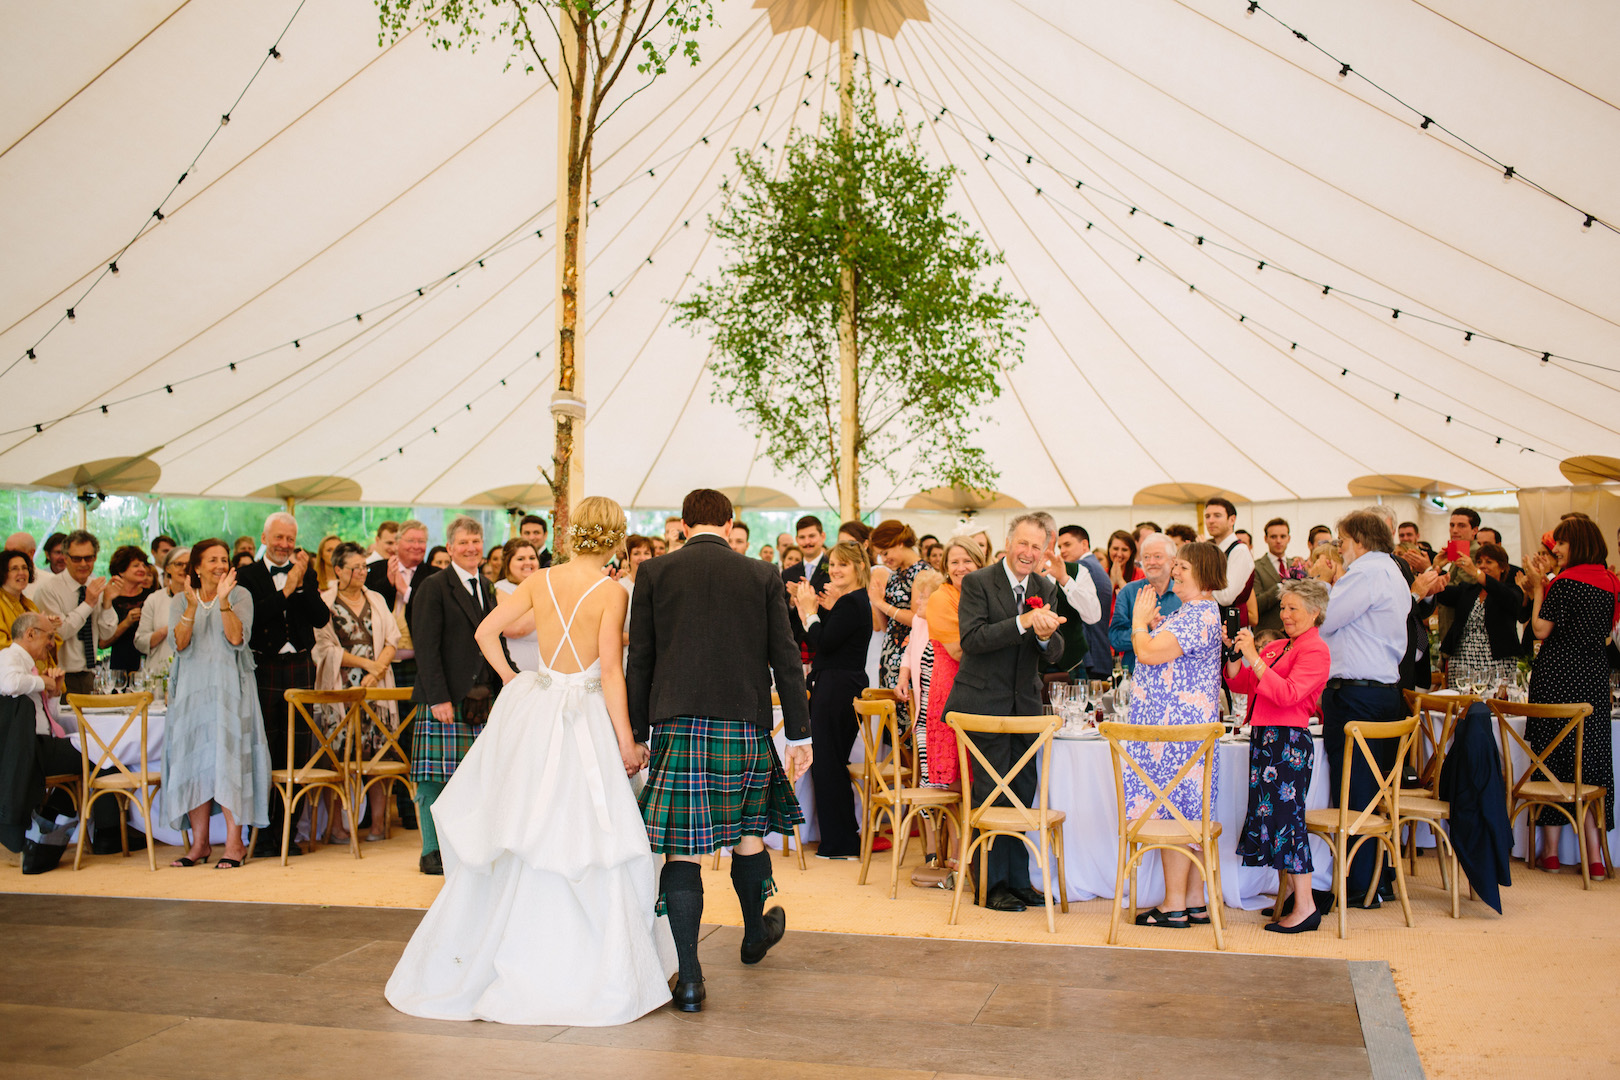 Alice & Alex's PapaKåta Sperry Wedding at Dunsinnan House, Scotland- Bride & Groom Style by Eilidh Sutherland Photography